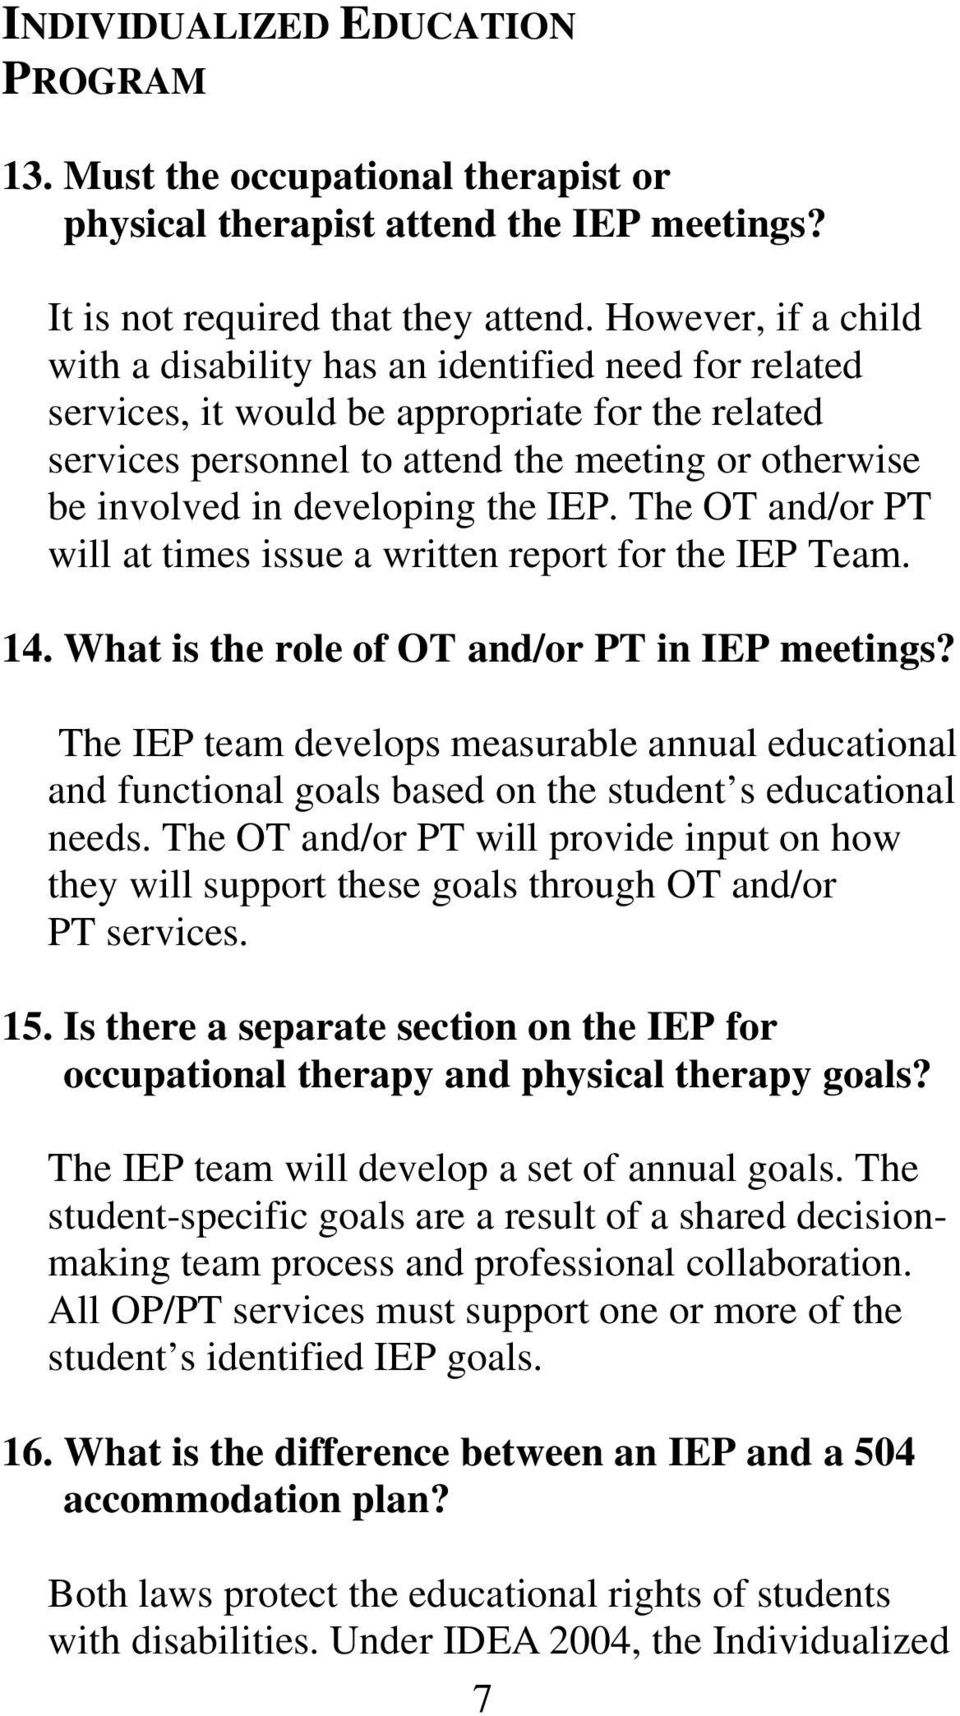 developing the IEP. The OT and/or PT will at times issue a written report for the IEP Team. 14. What is the role of OT and/or PT in IEP meetings?